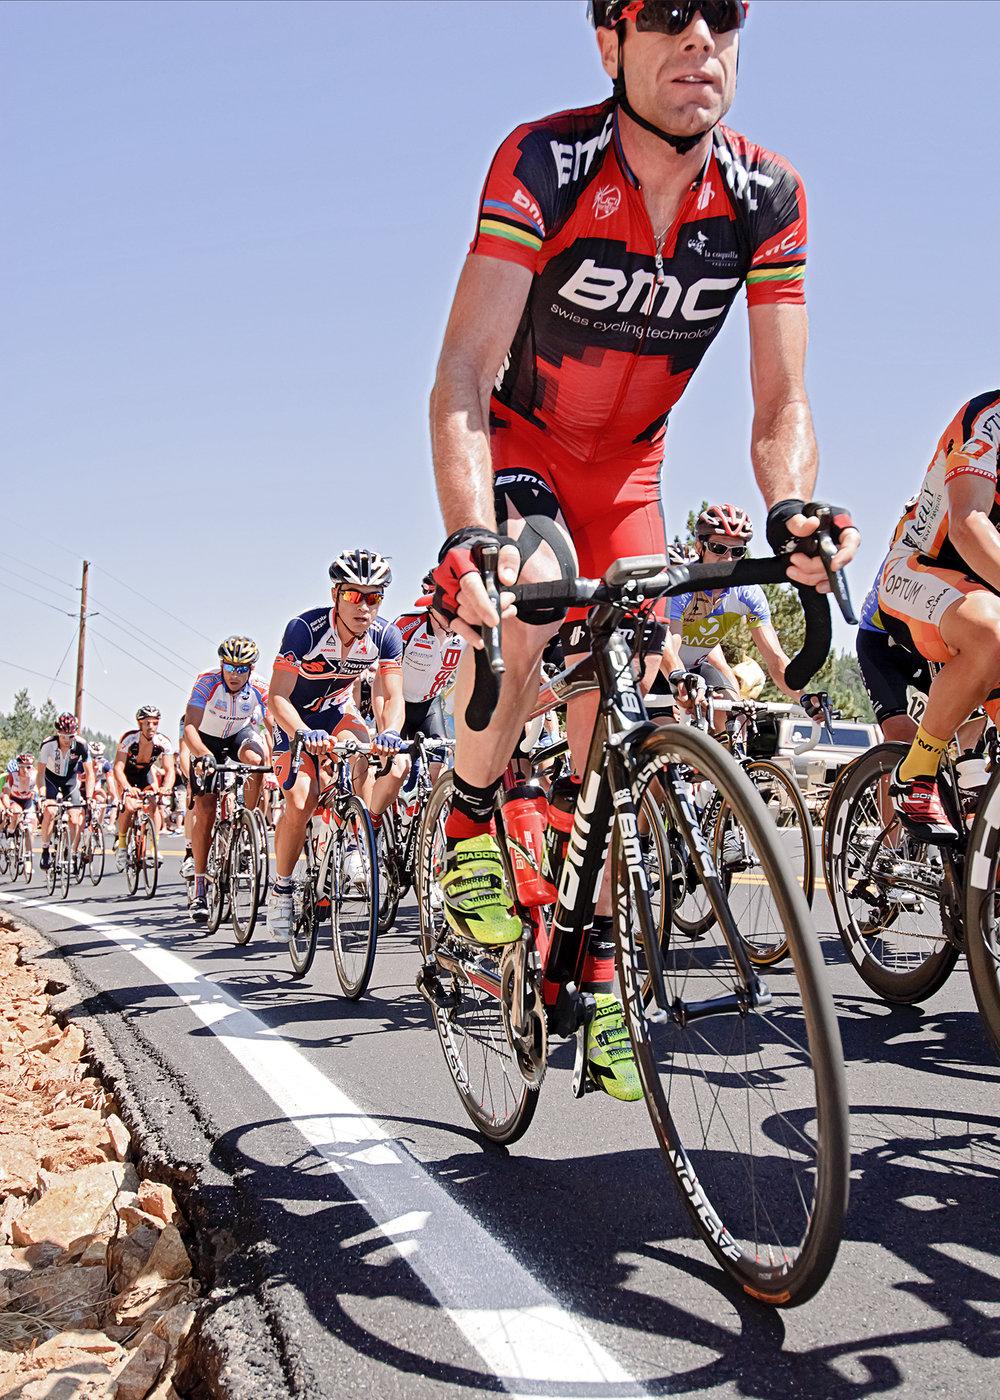 Cadel Evans and the peloton climbing Boulder Canyon during the Tour of Colorado. Nederland, CO